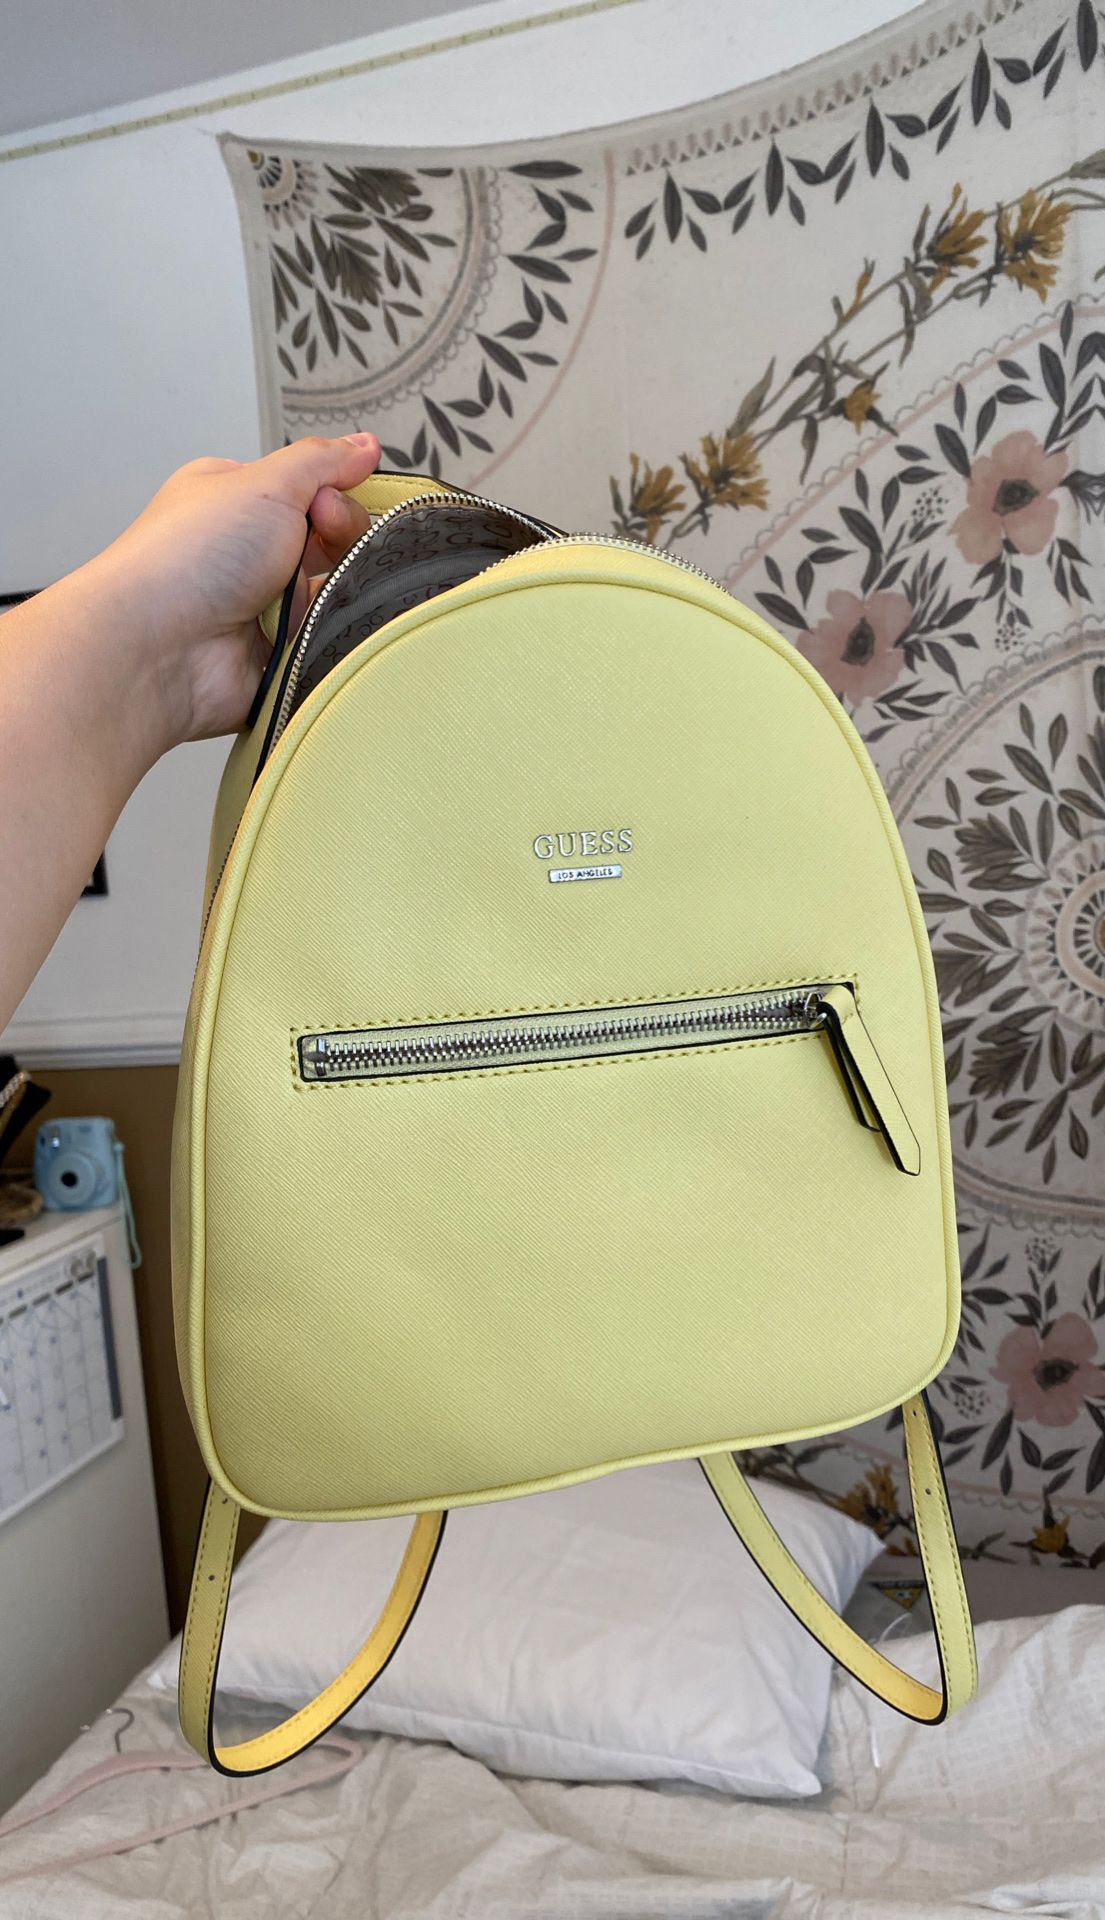 New guess backpack